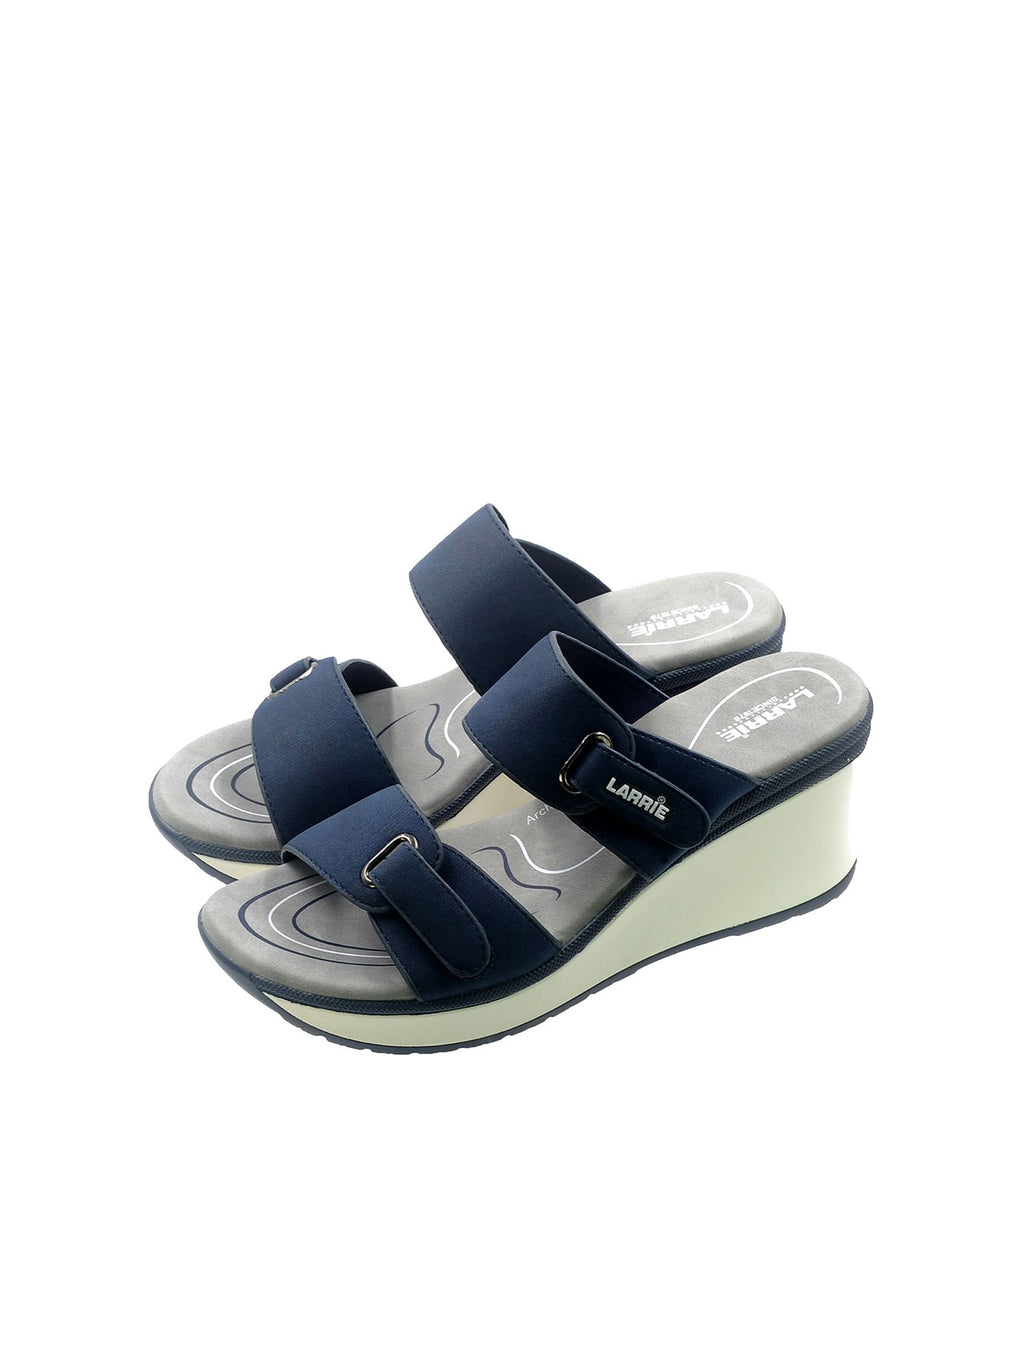 Larrie Navy Softly Sassy Height Wedges Sandals